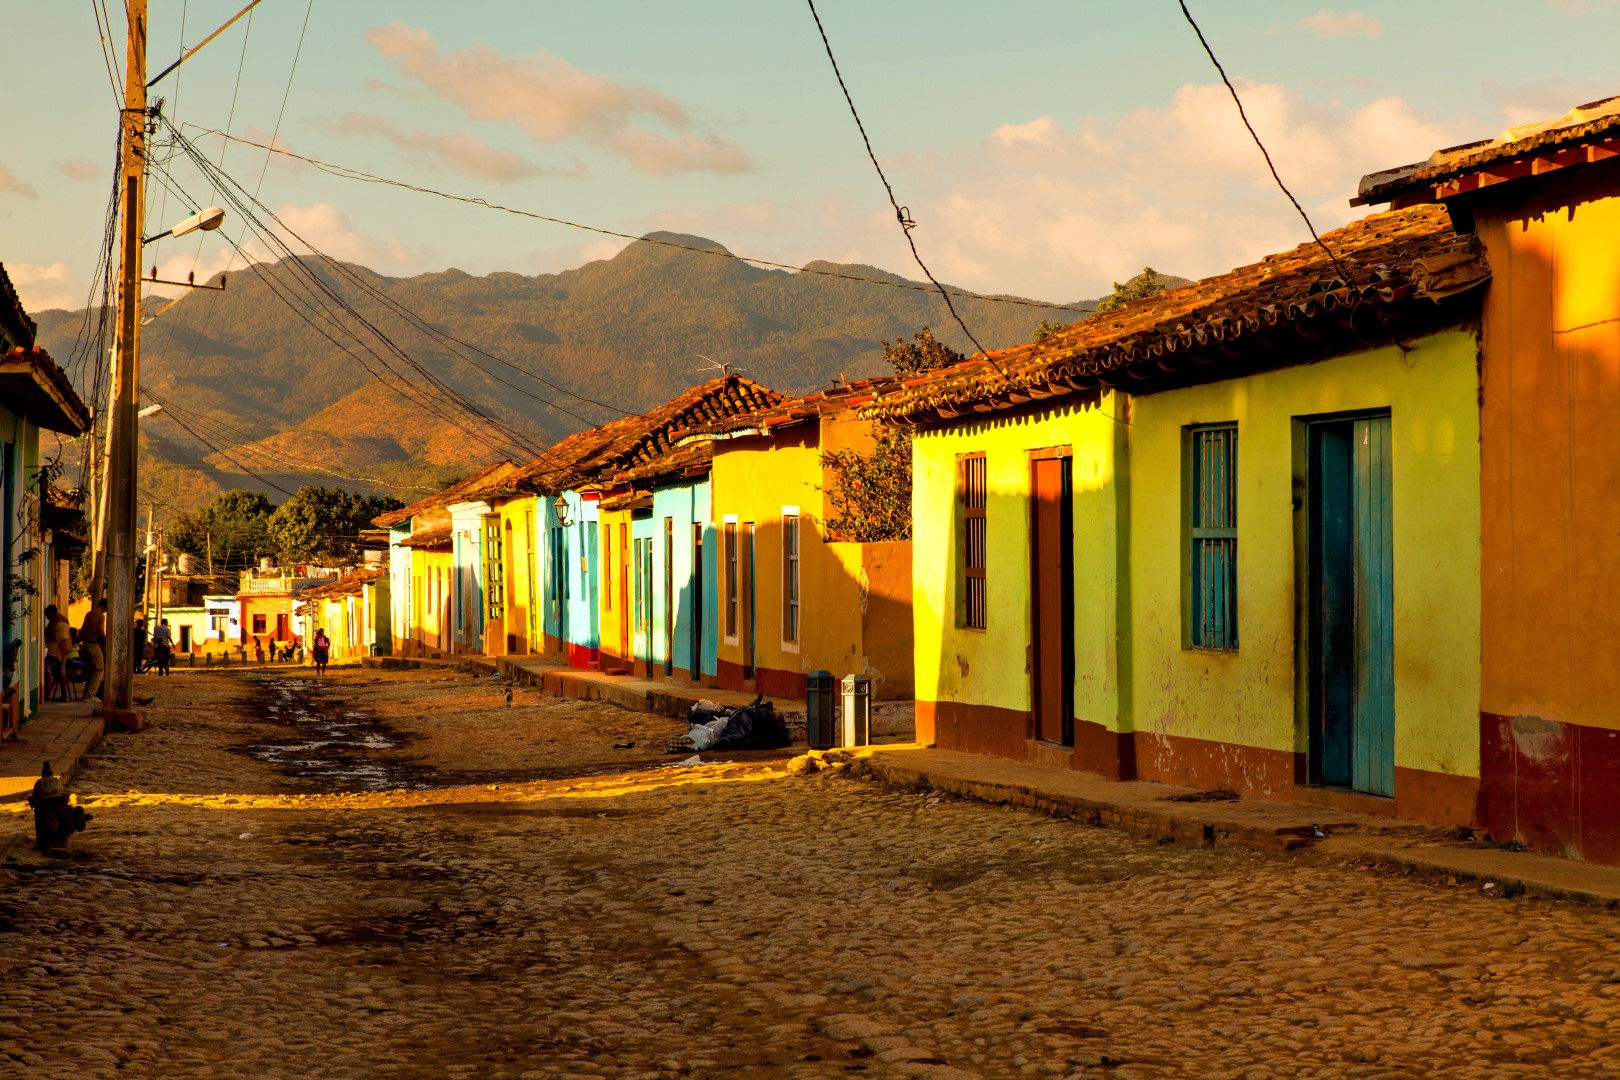 Colourful street scene in Trinidad, Cuba